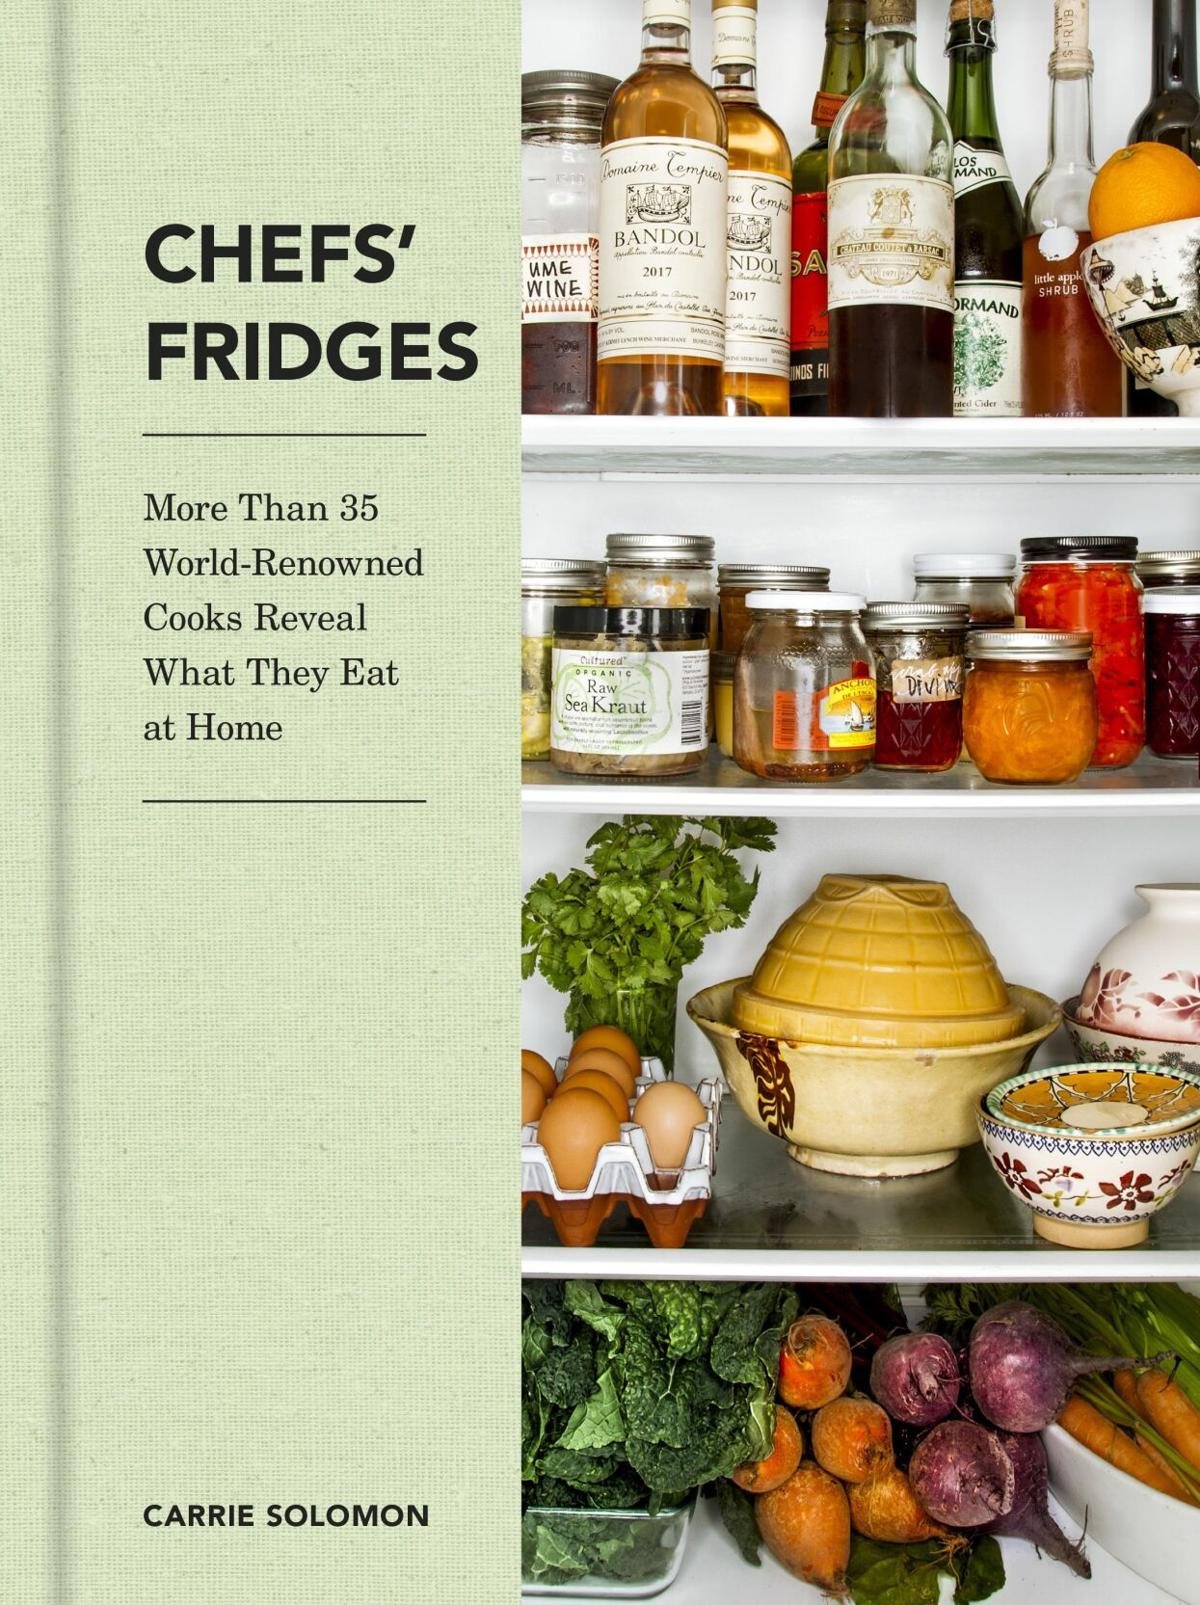 Stephen Fries: What's in your favorite chef's refrigerator?